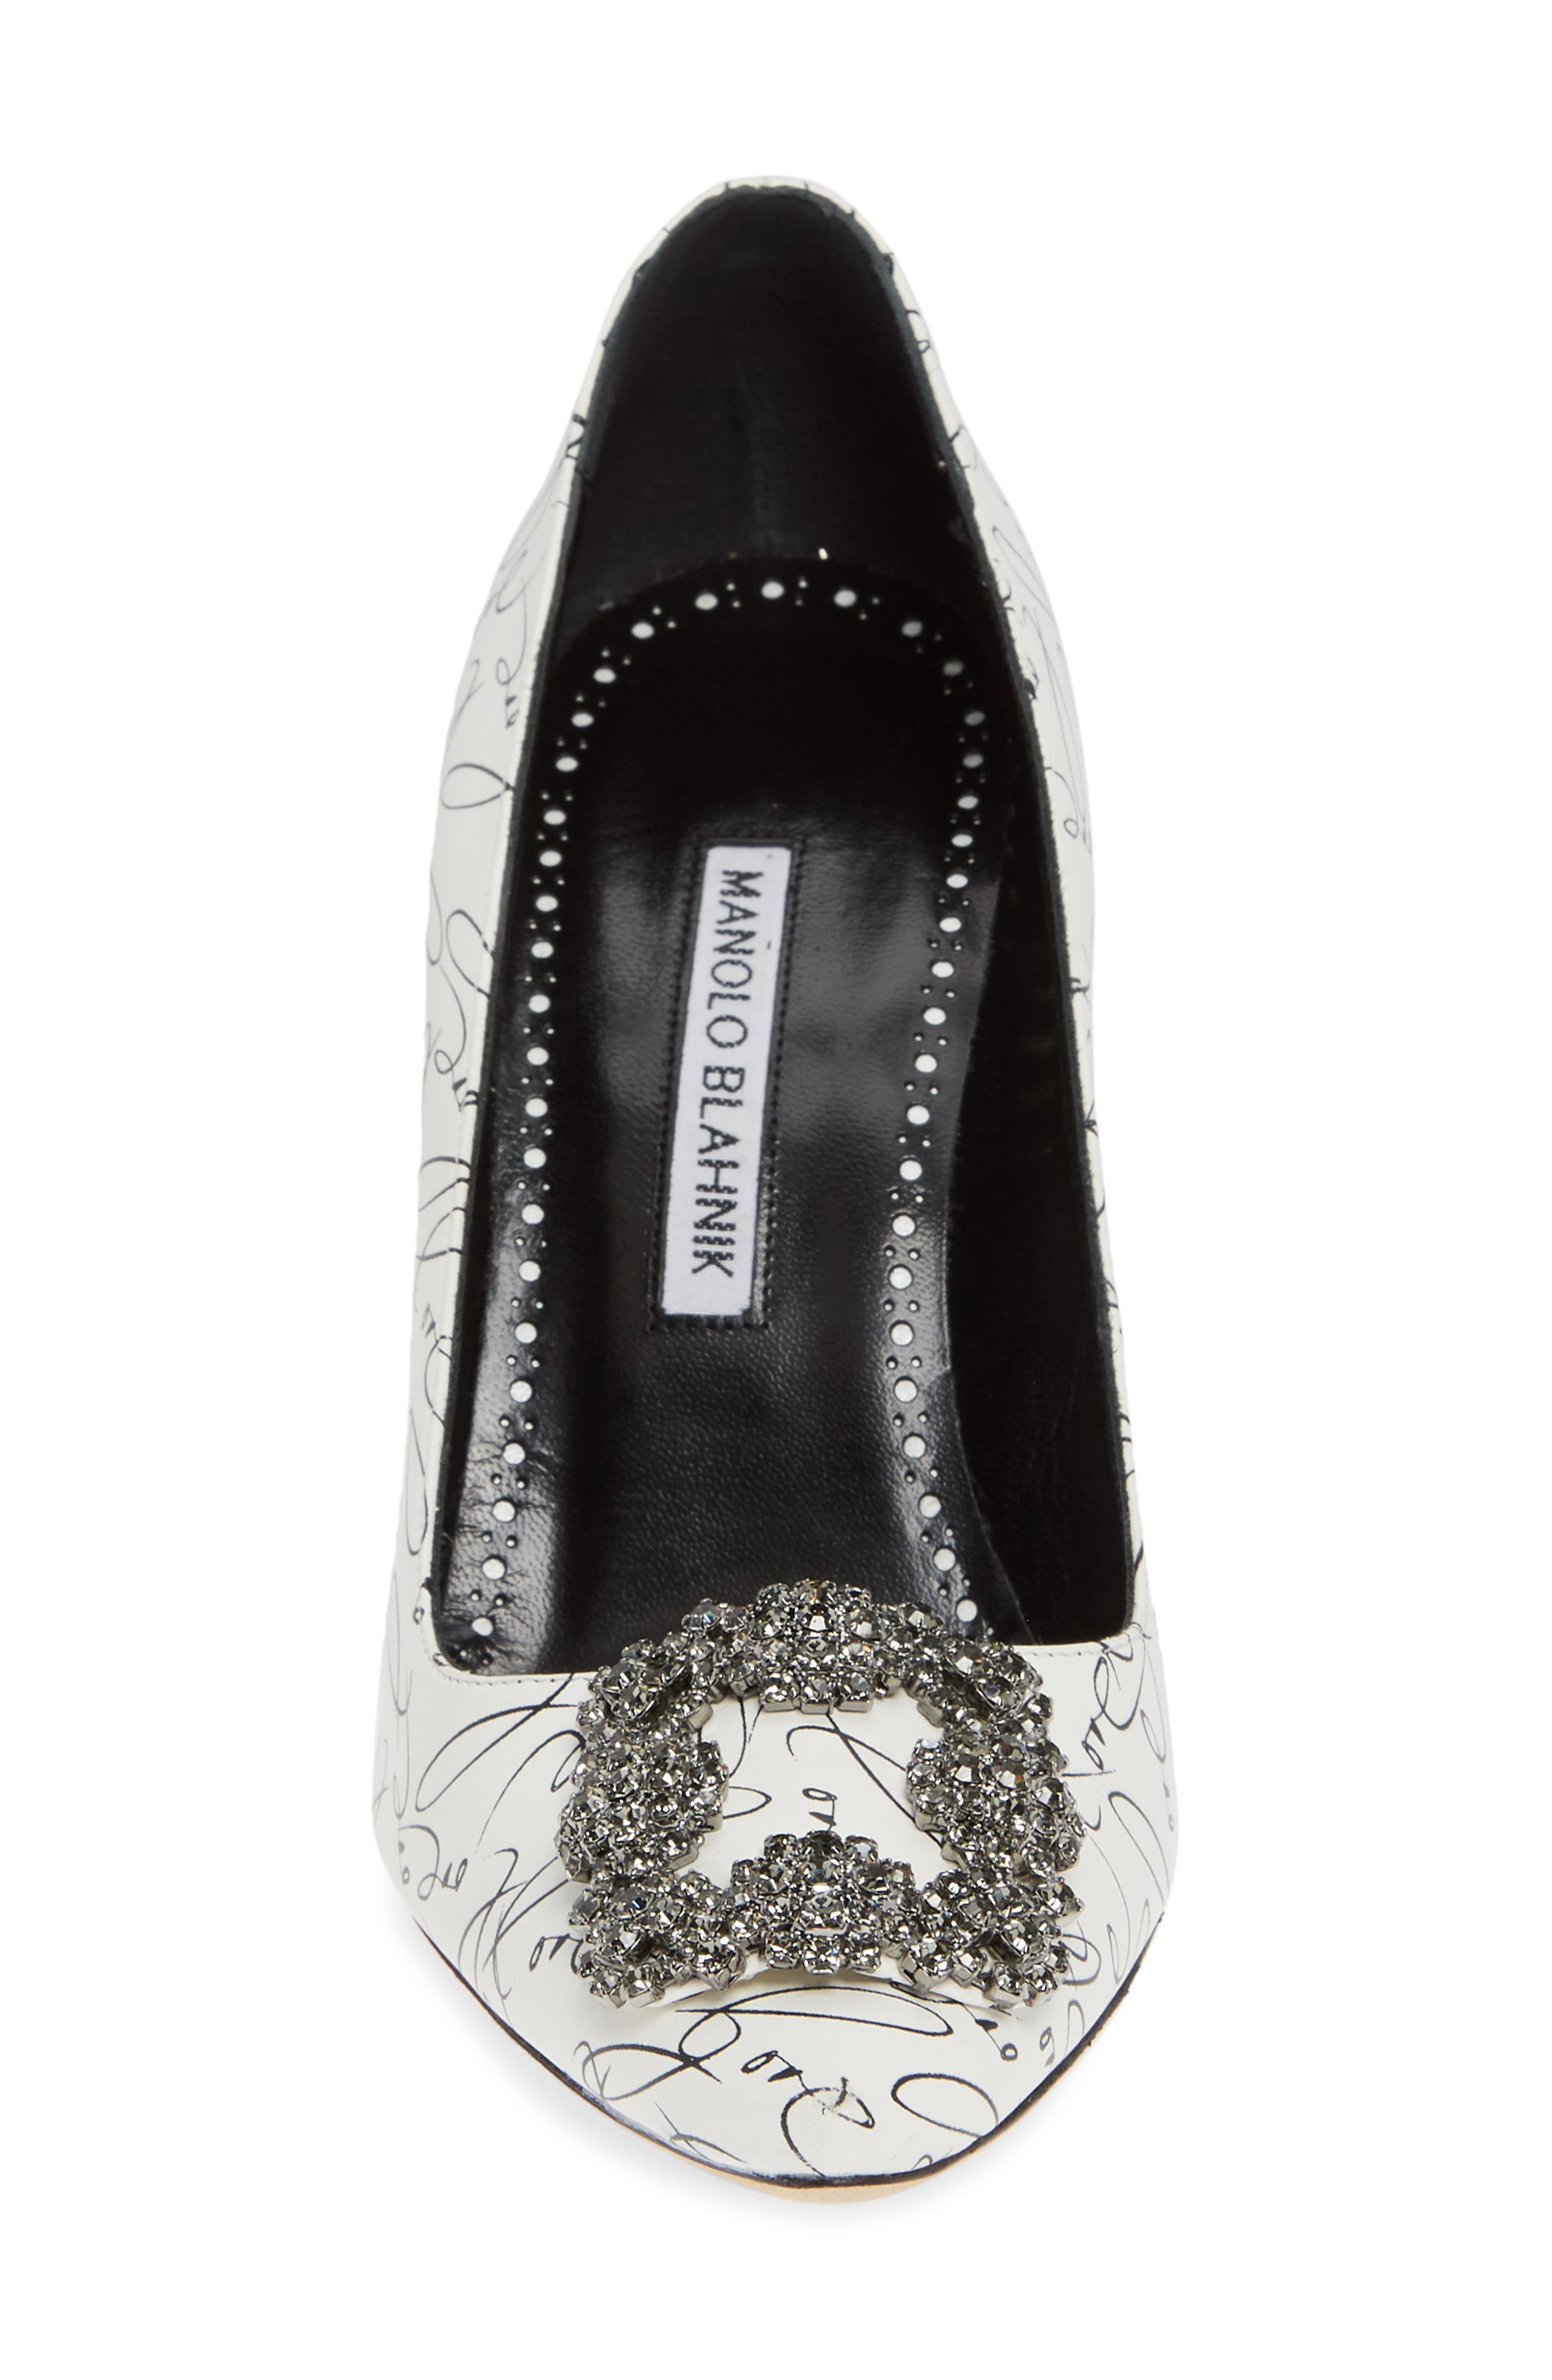 MANOLO BLAHNIK,                             Decade of Love Hangisi Anniversary Embellished Pump,                             Alternate thumbnail 4, color,                             WHITE LEATHER